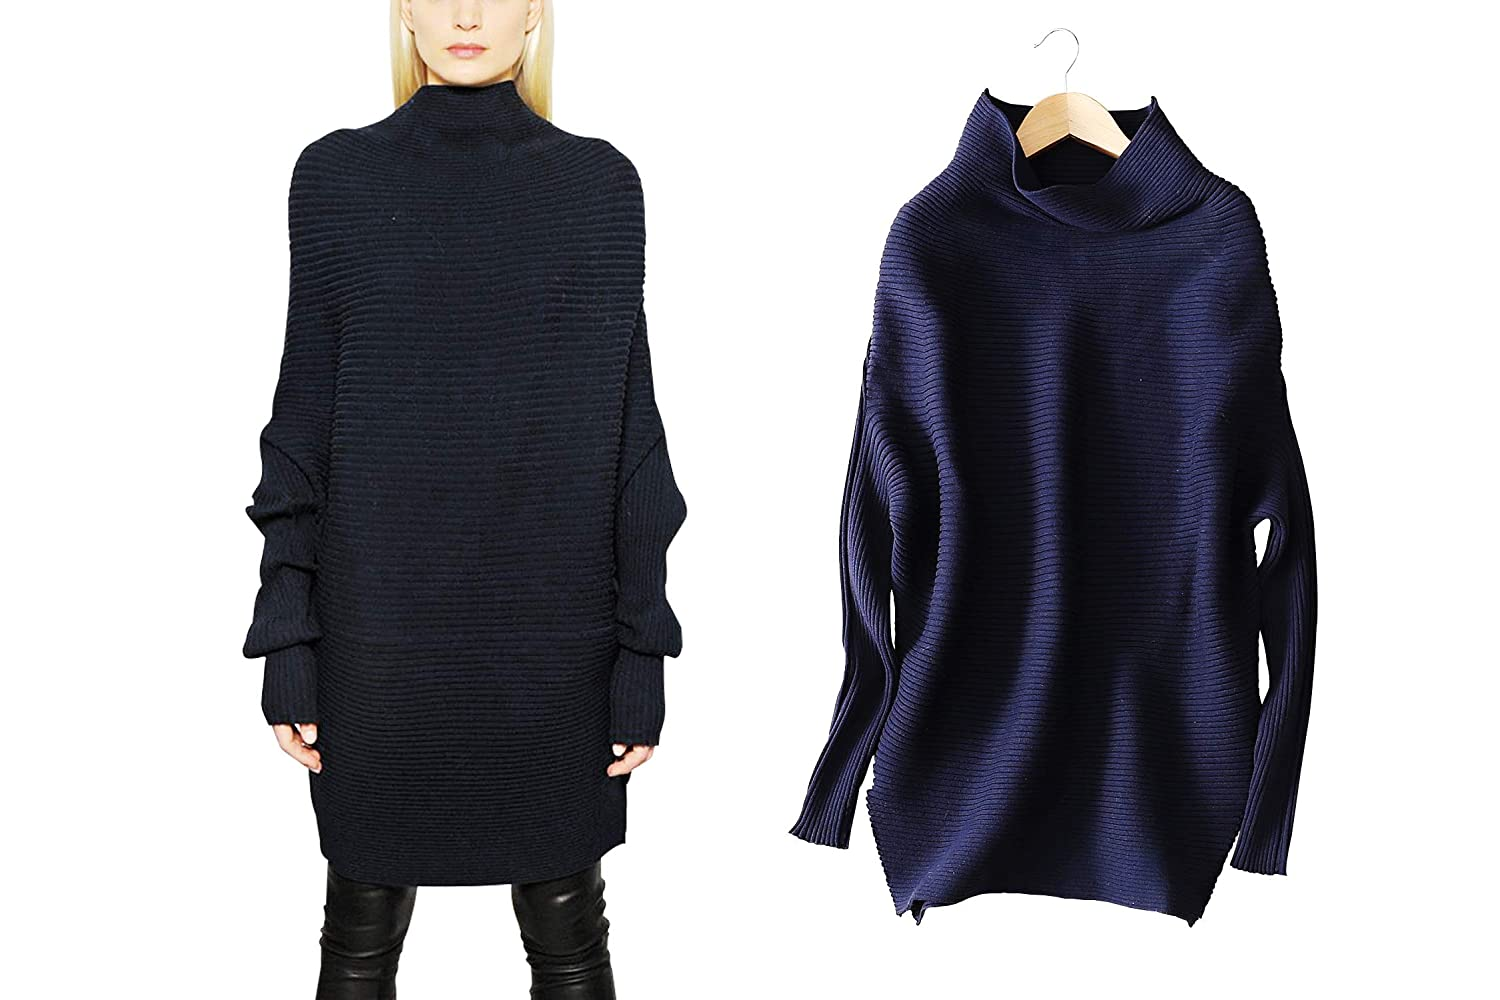 YISHI Fashion Women's Dress Ribbed Tops Loose and Comfortable Long Sleeve Knitting Blouse Fall Winter Sweater F507